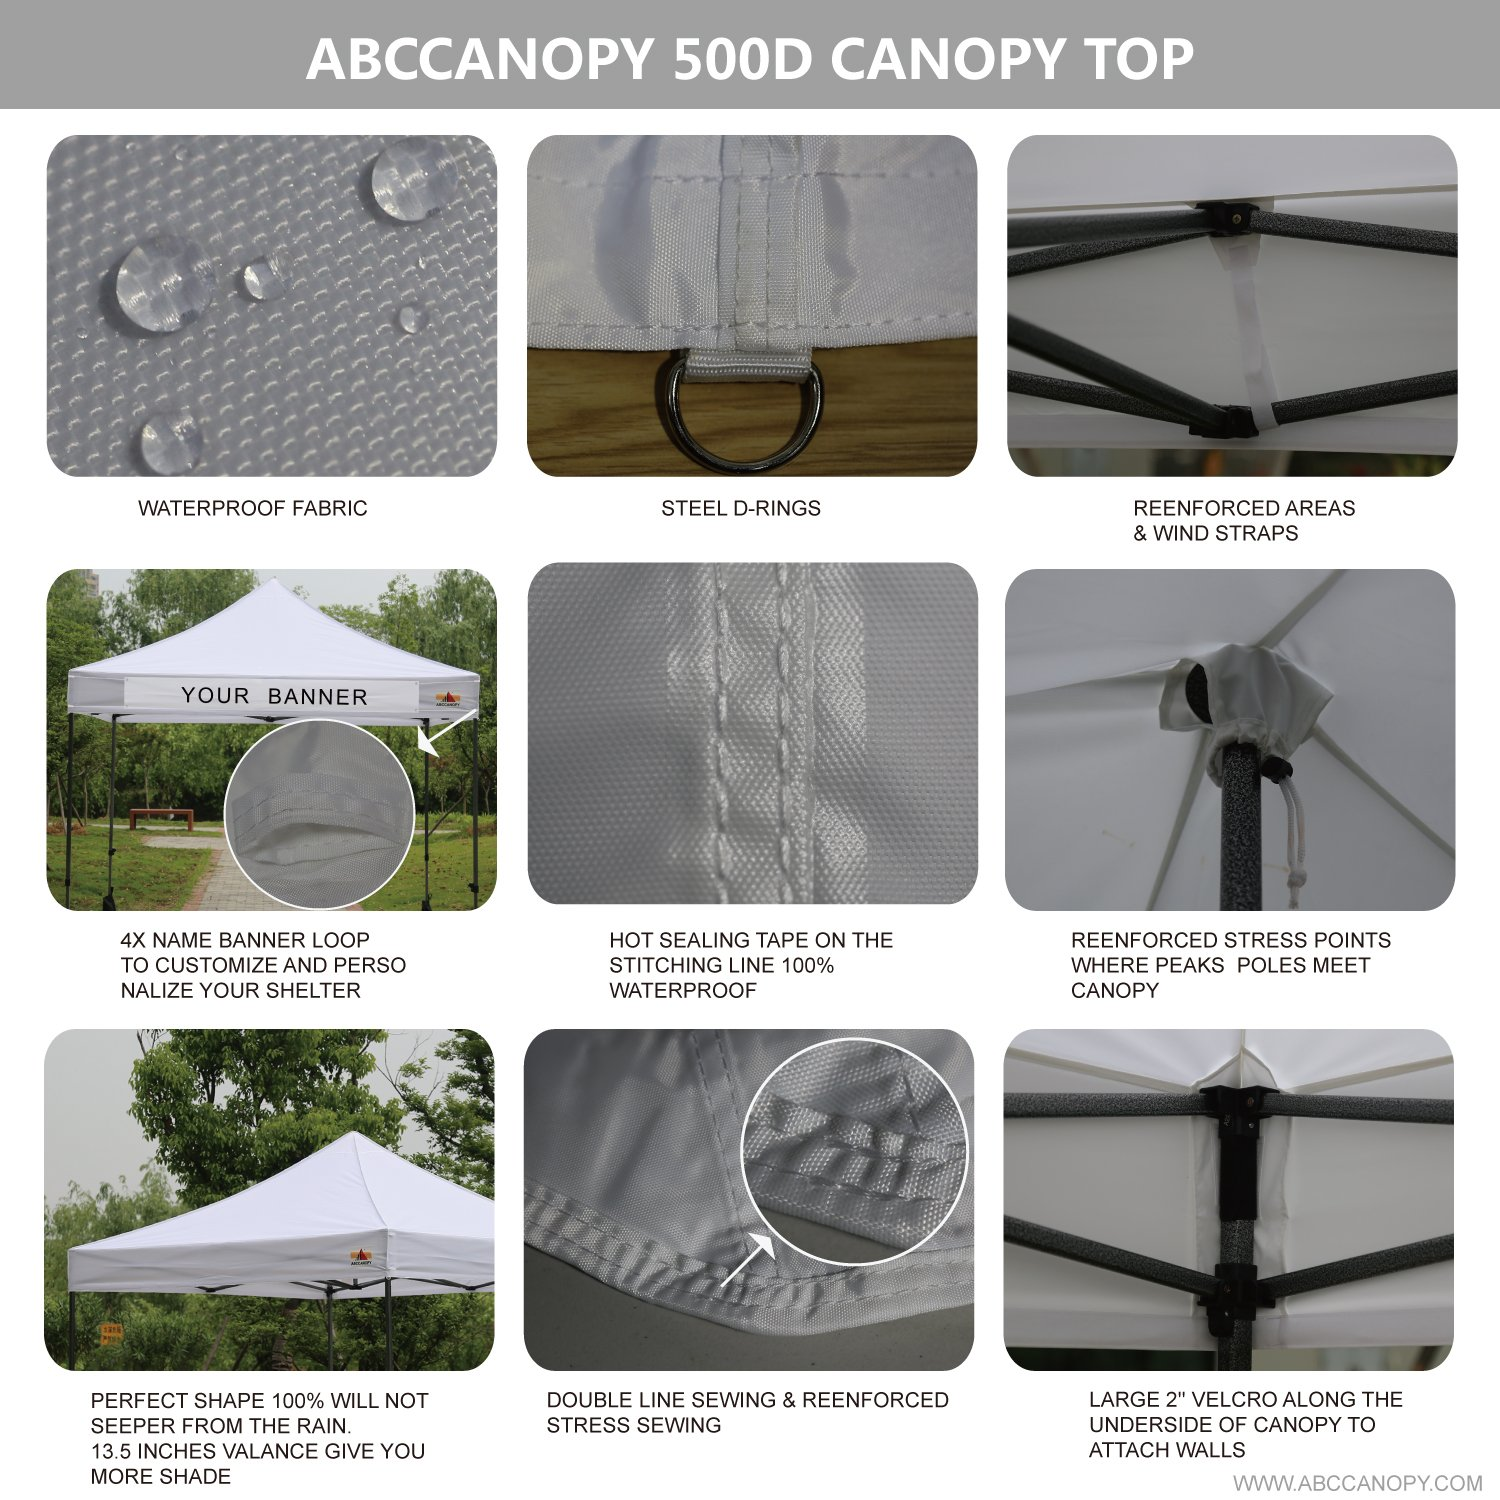 Amazon.com  AbcCanopy 10x10 Pop up Tent Instant Canopy Commercial Outdoor Canopy with Wheeled Carry Bag and 4x Weight Bag (WHITE)  Garden u0026 Outdoor  sc 1 st  Amazon.com & Amazon.com : AbcCanopy 10x10 Pop up Tent Instant Canopy Commercial ...